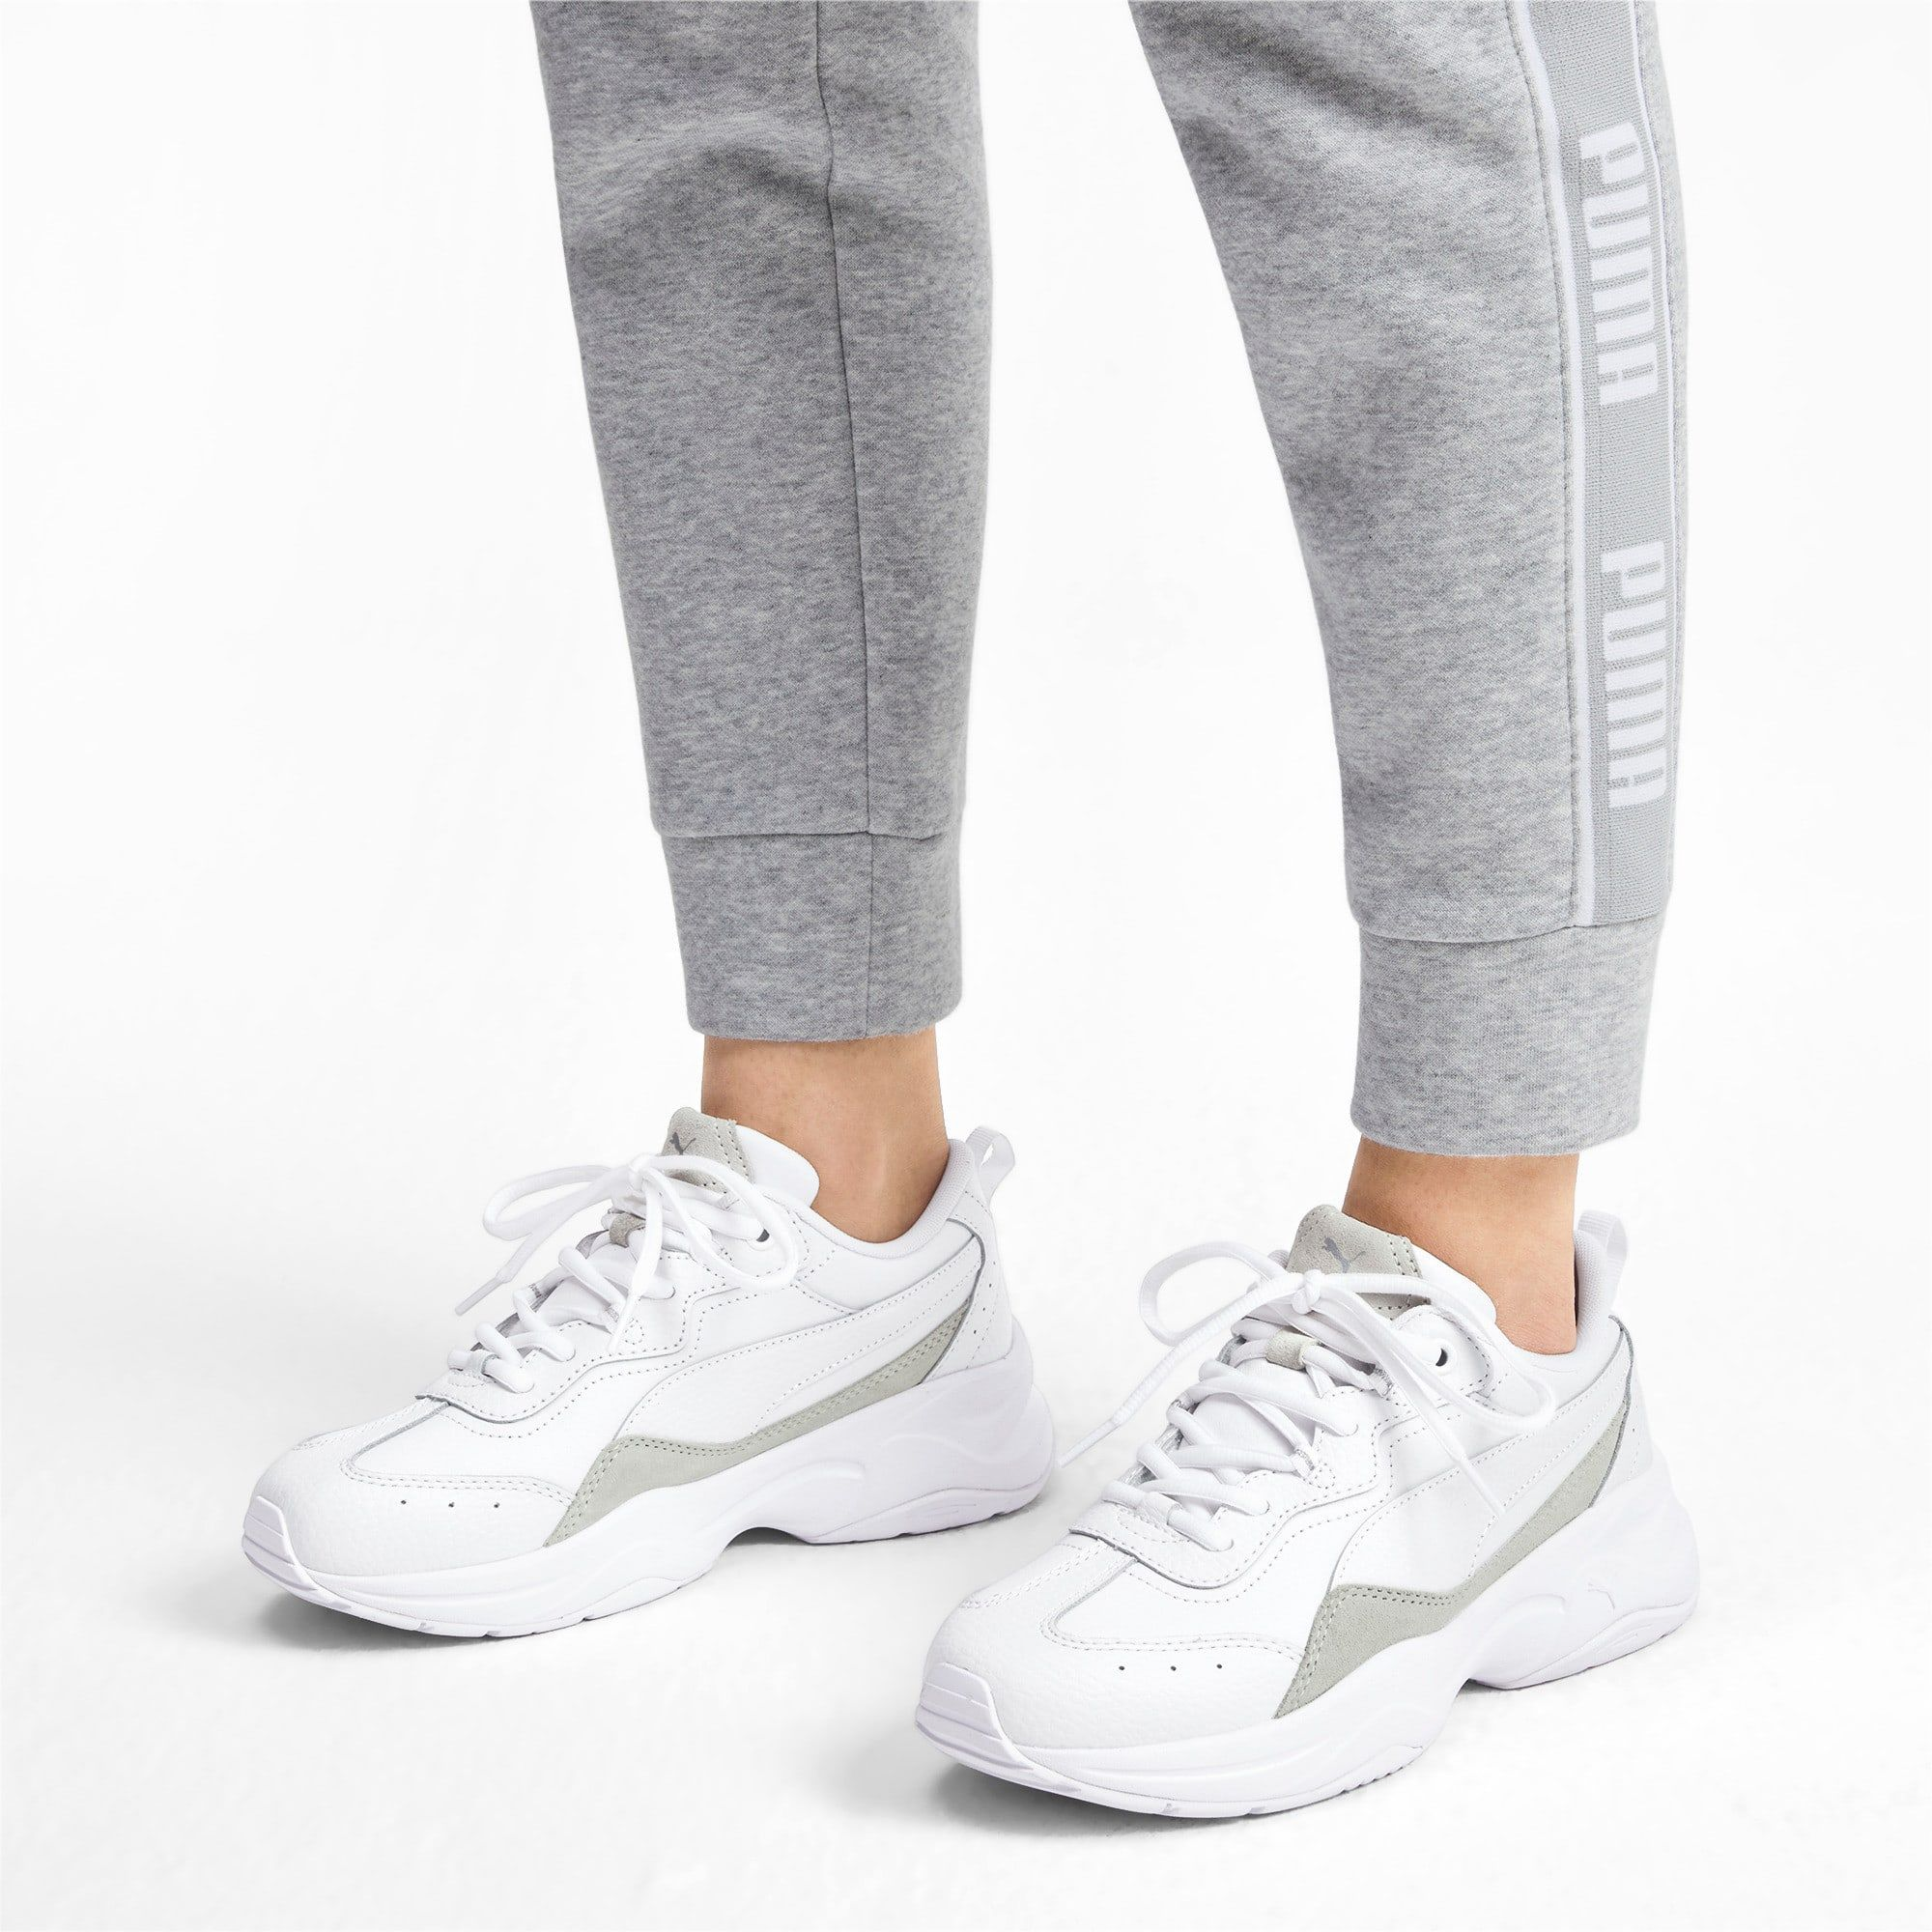 Cilia Women's Trainers in 2020 | Sneakers, Puma sneakers